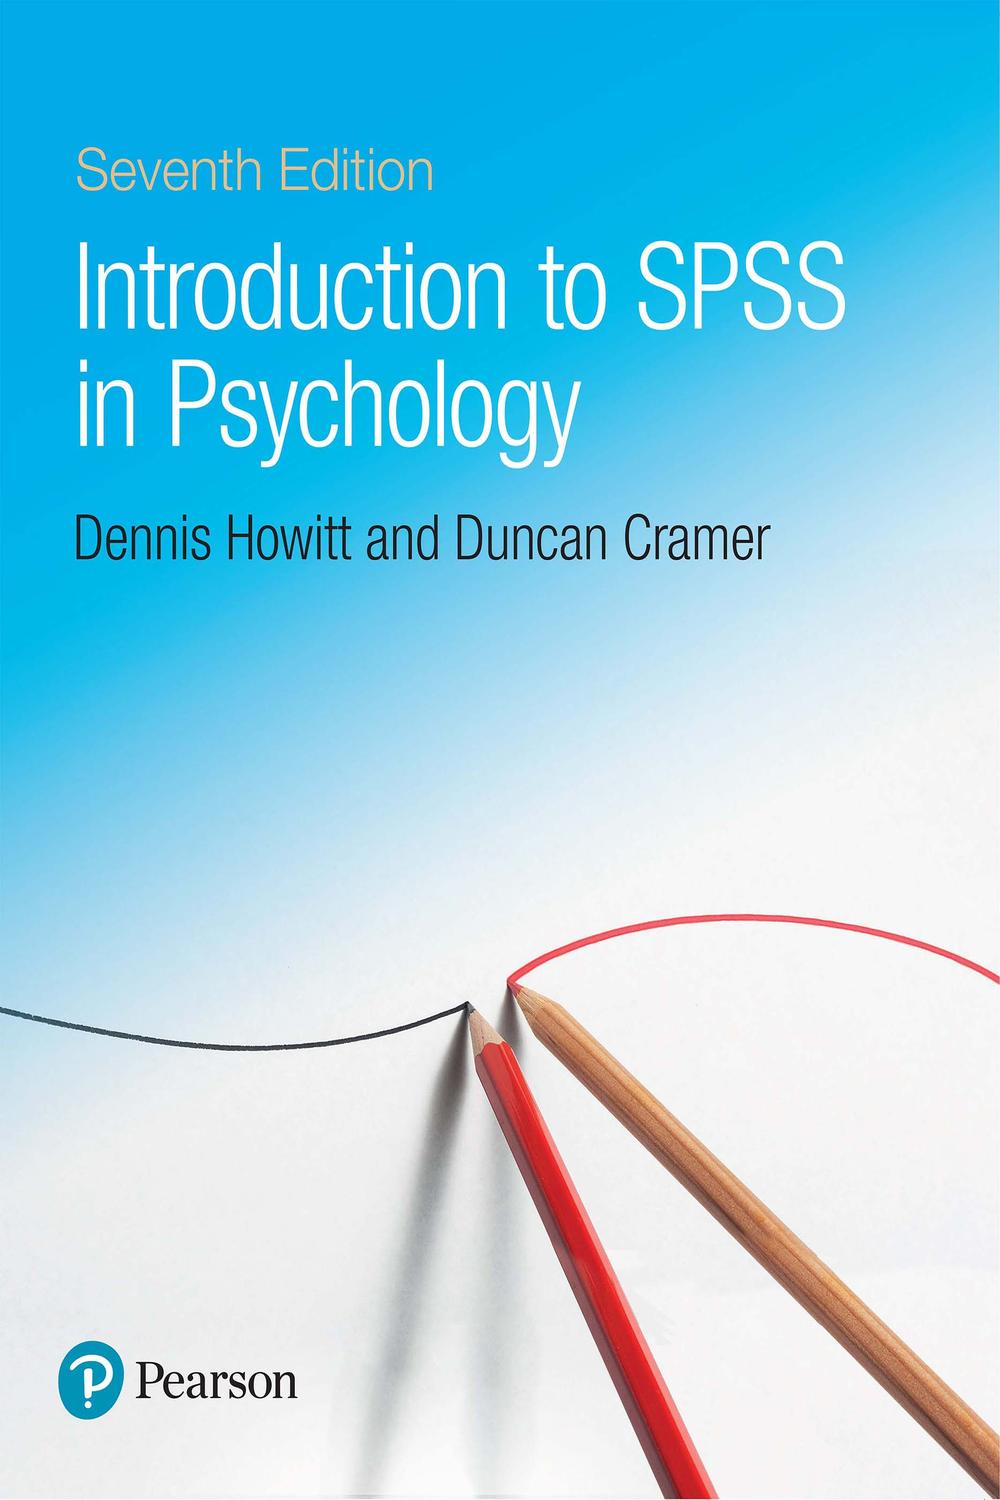 Introduction to SPSS in Psychology by Dennis Howitt, Duncan Cramer